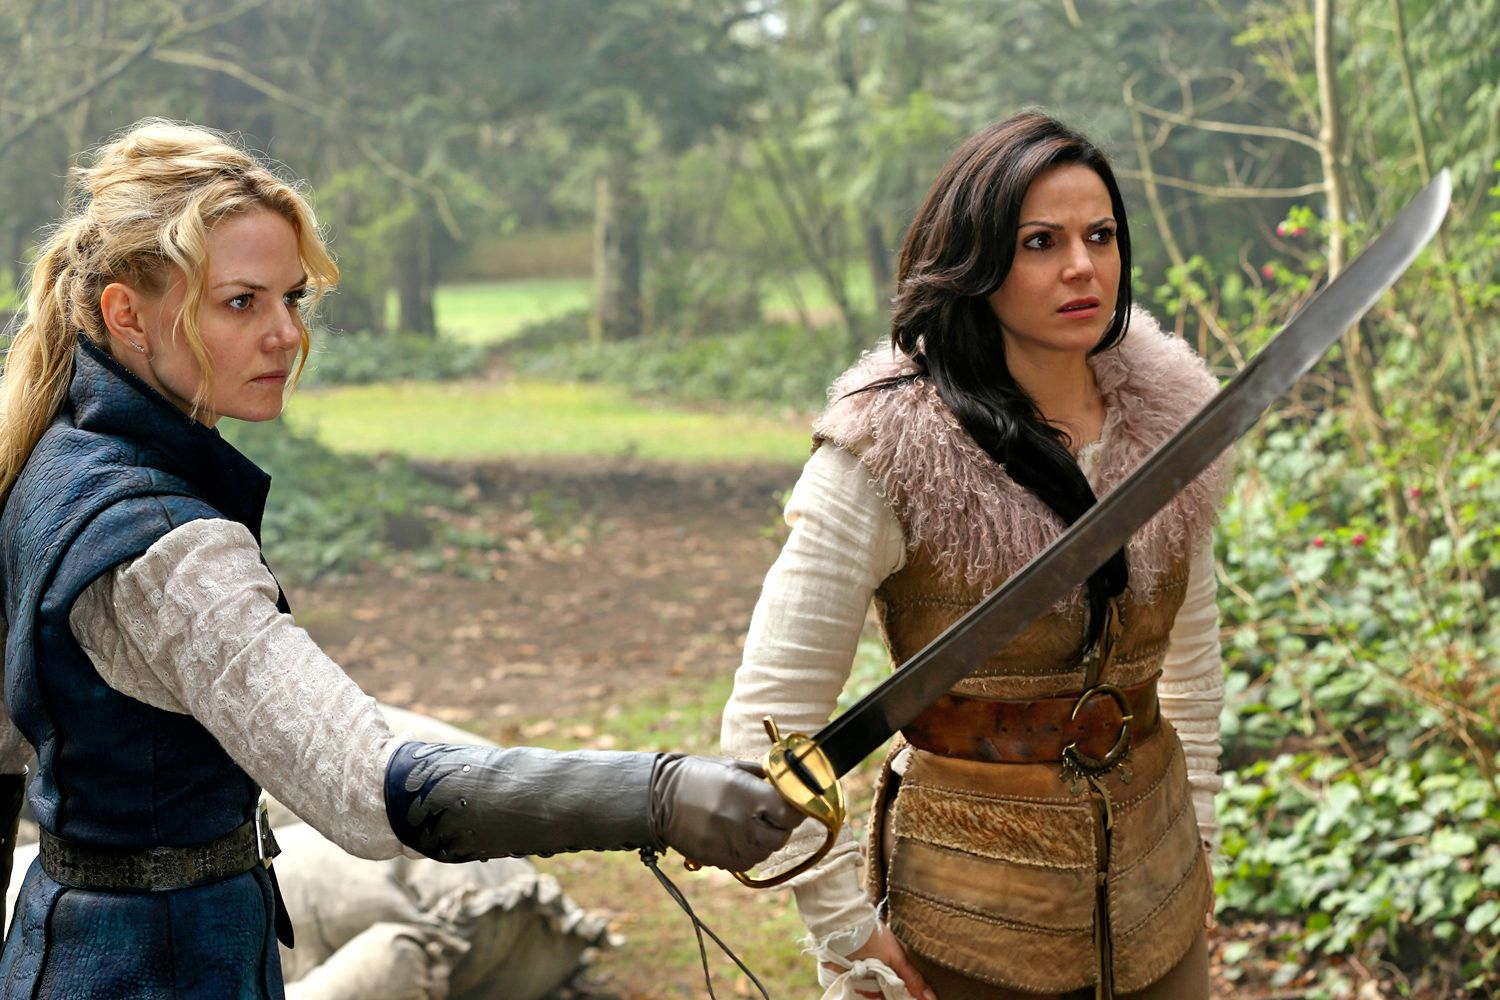 The future for our favorite fairy tale characters is looking pretty bleak as Once Upon a Time turns heroes into villains in its two-hour season finale.